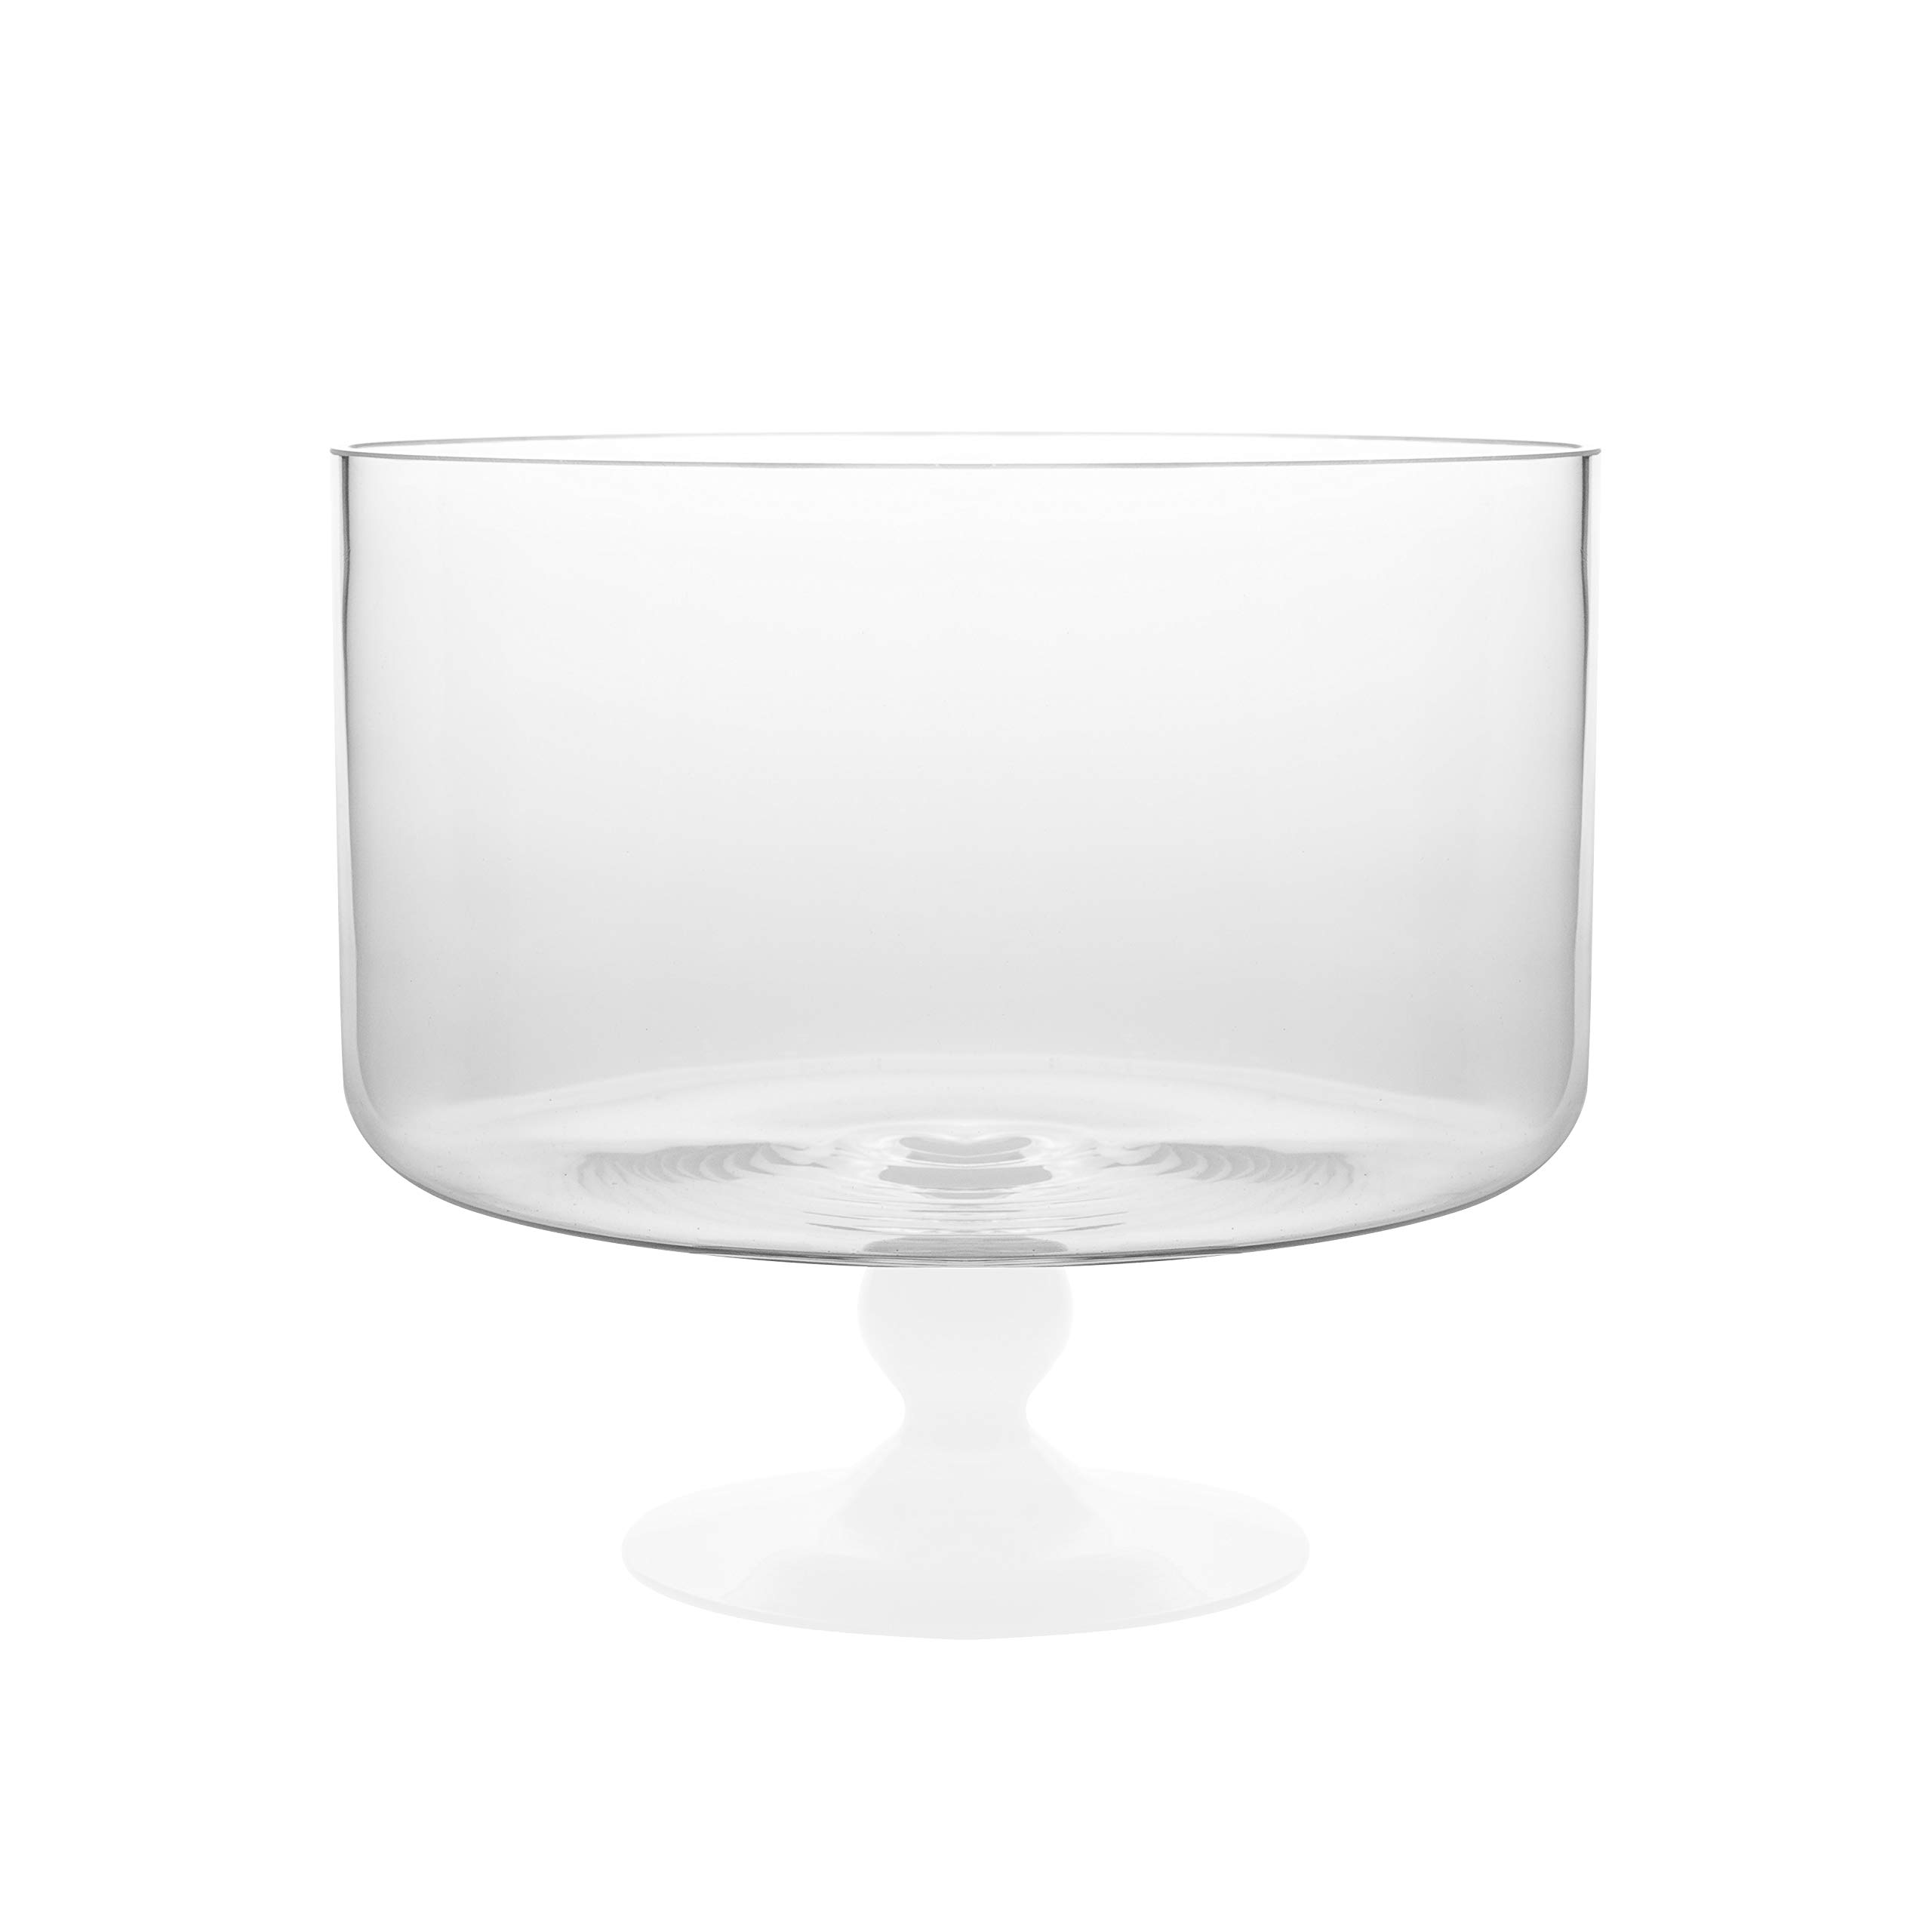 Barski - European Beautiful - Glass - Large Trifle Bowl - 9.25'' D - 170 oz - with Opal (white) Foot - Made in Europe by Barski (Image #2)